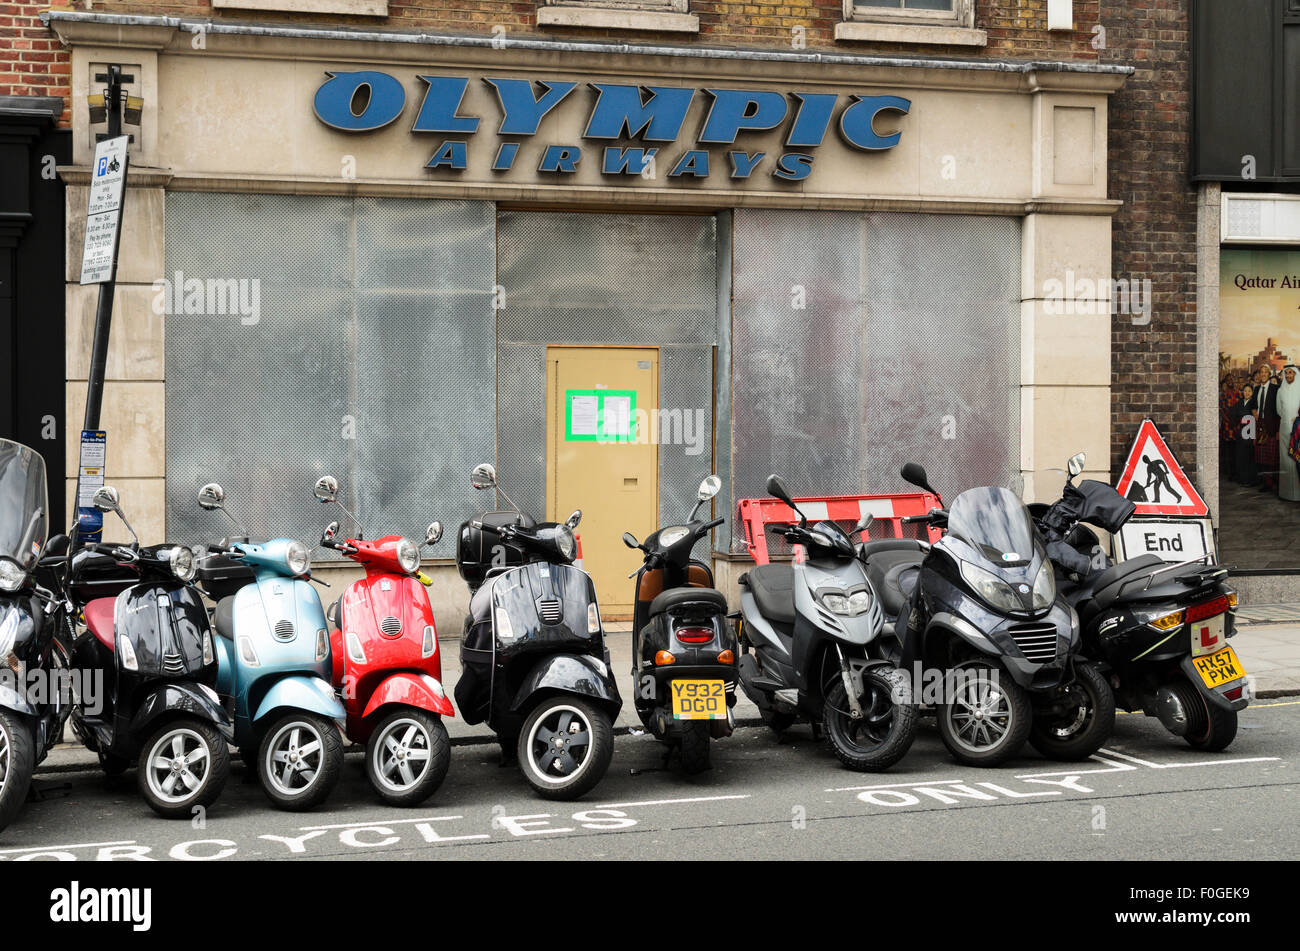 Mopeds parked outside the former Olympic Airways Office, London, England, UK. - Stock Image